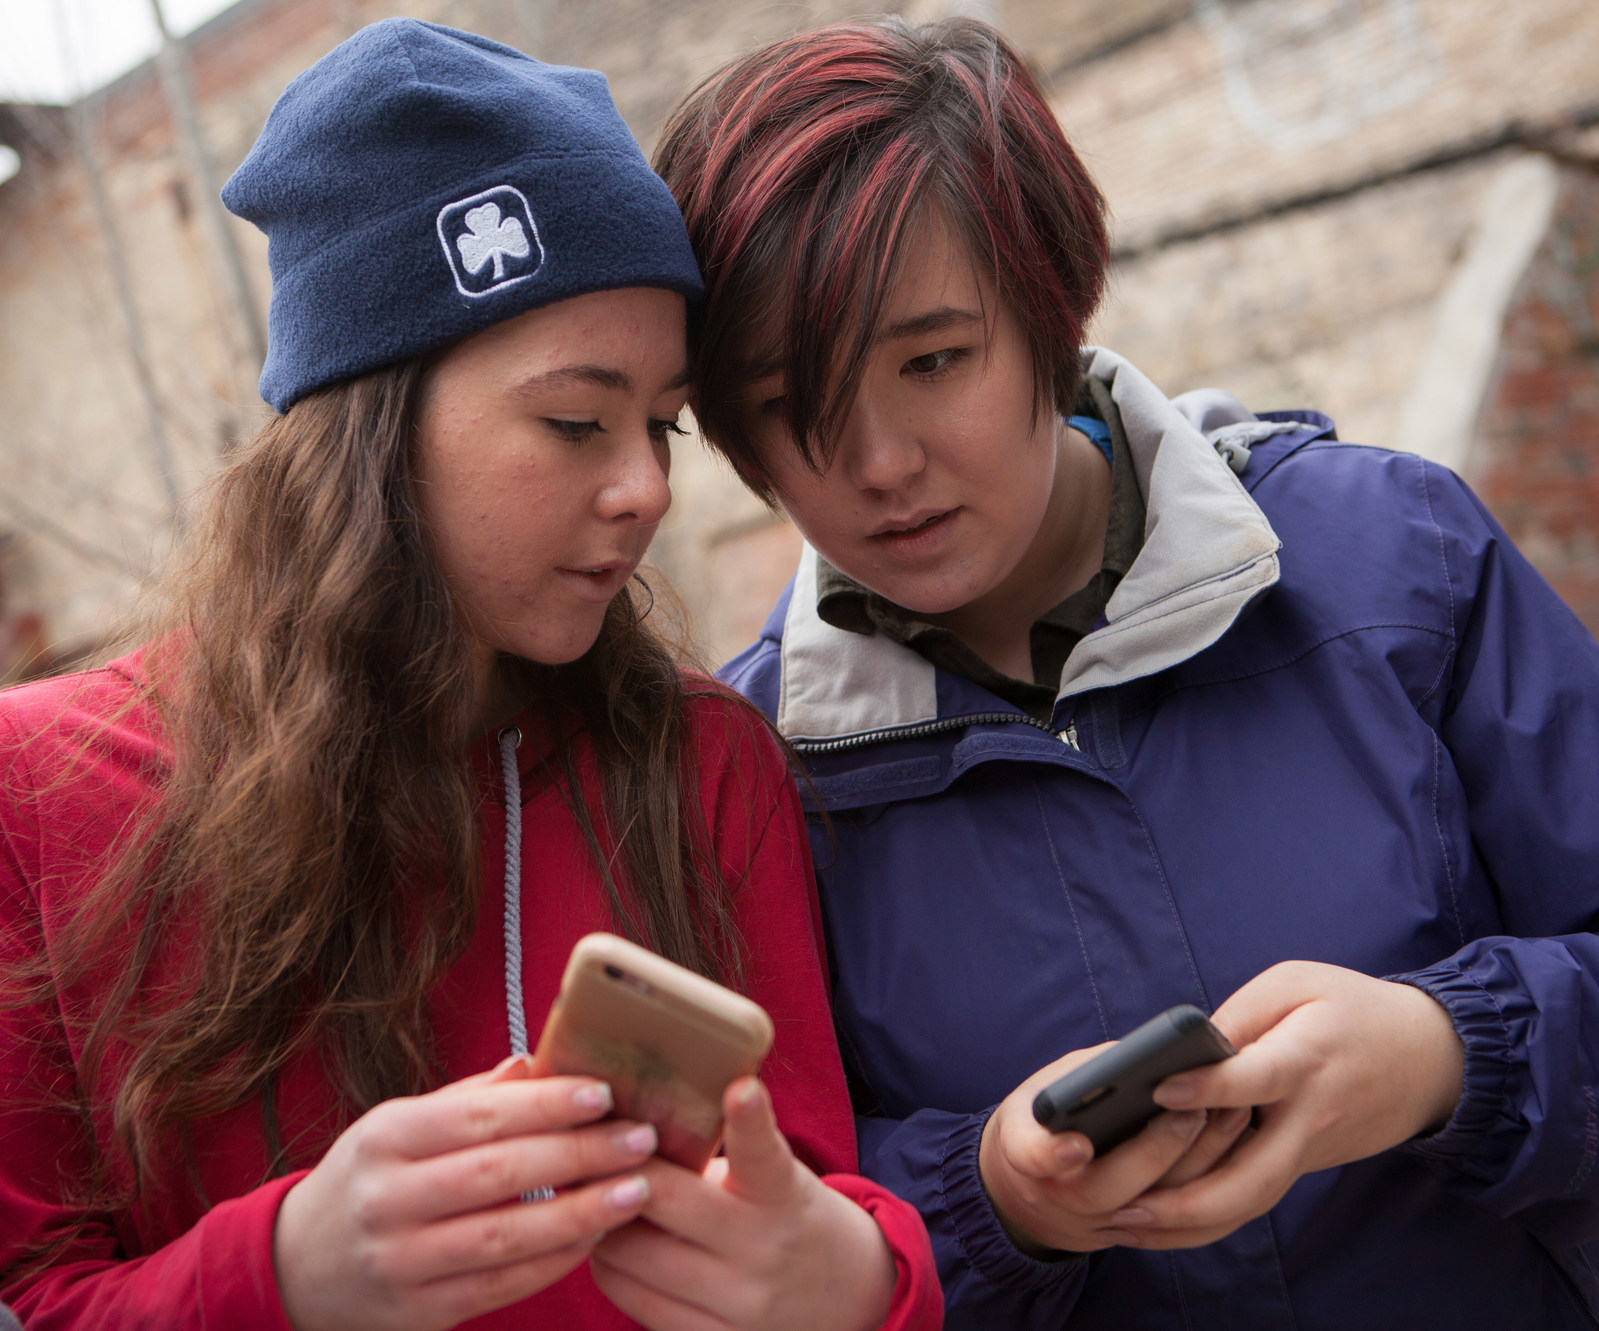 A nationwide survey, commissioned by Girl Guides of Canada through Ipsos, reveals that over half of girls in Canada agree that they face unrealistic expectations and mixed messages that negatively impact their self-esteem. (CNW Group/Girl Guides of Canada)